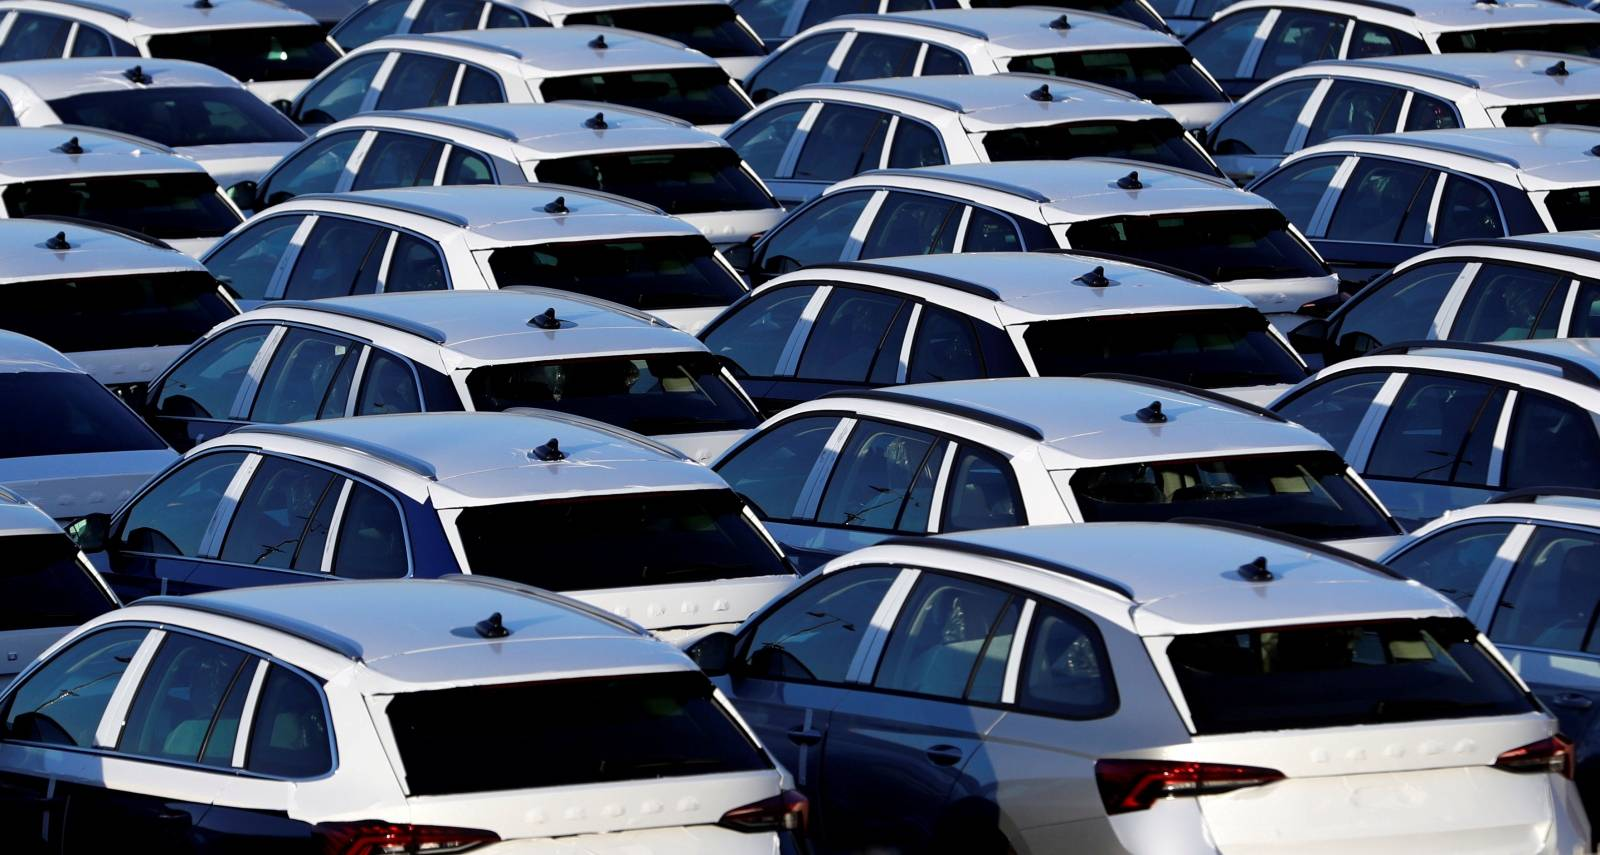 FILE PHOTO: Cars are parked in the courtyard of Skoda Auto in Mlada Boleslav